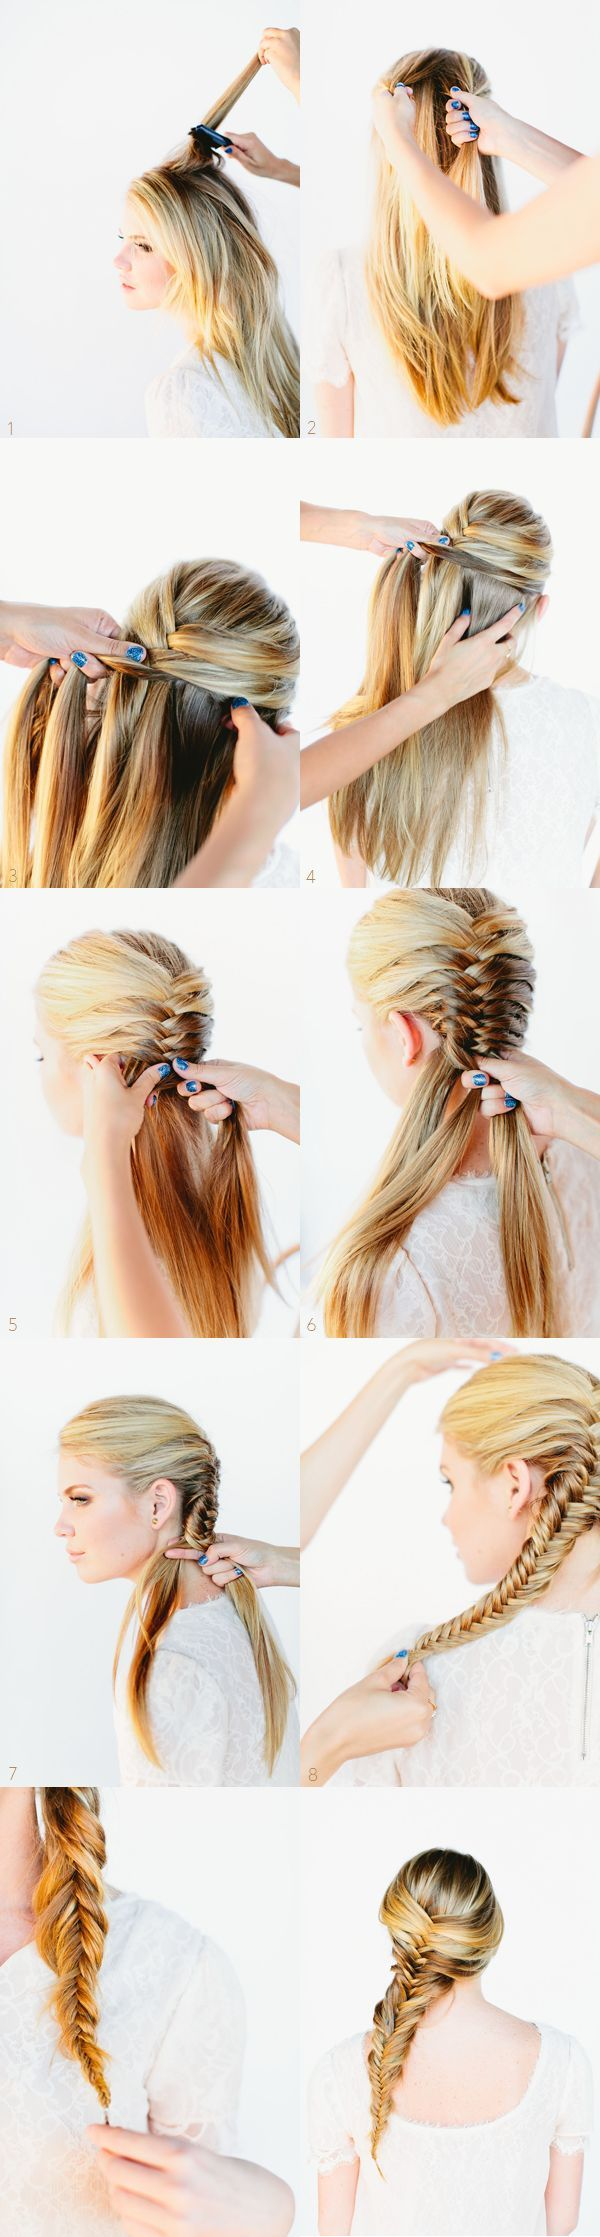 589 best Braids images on Pinterest | Bridal hairstyles, Crochet ...